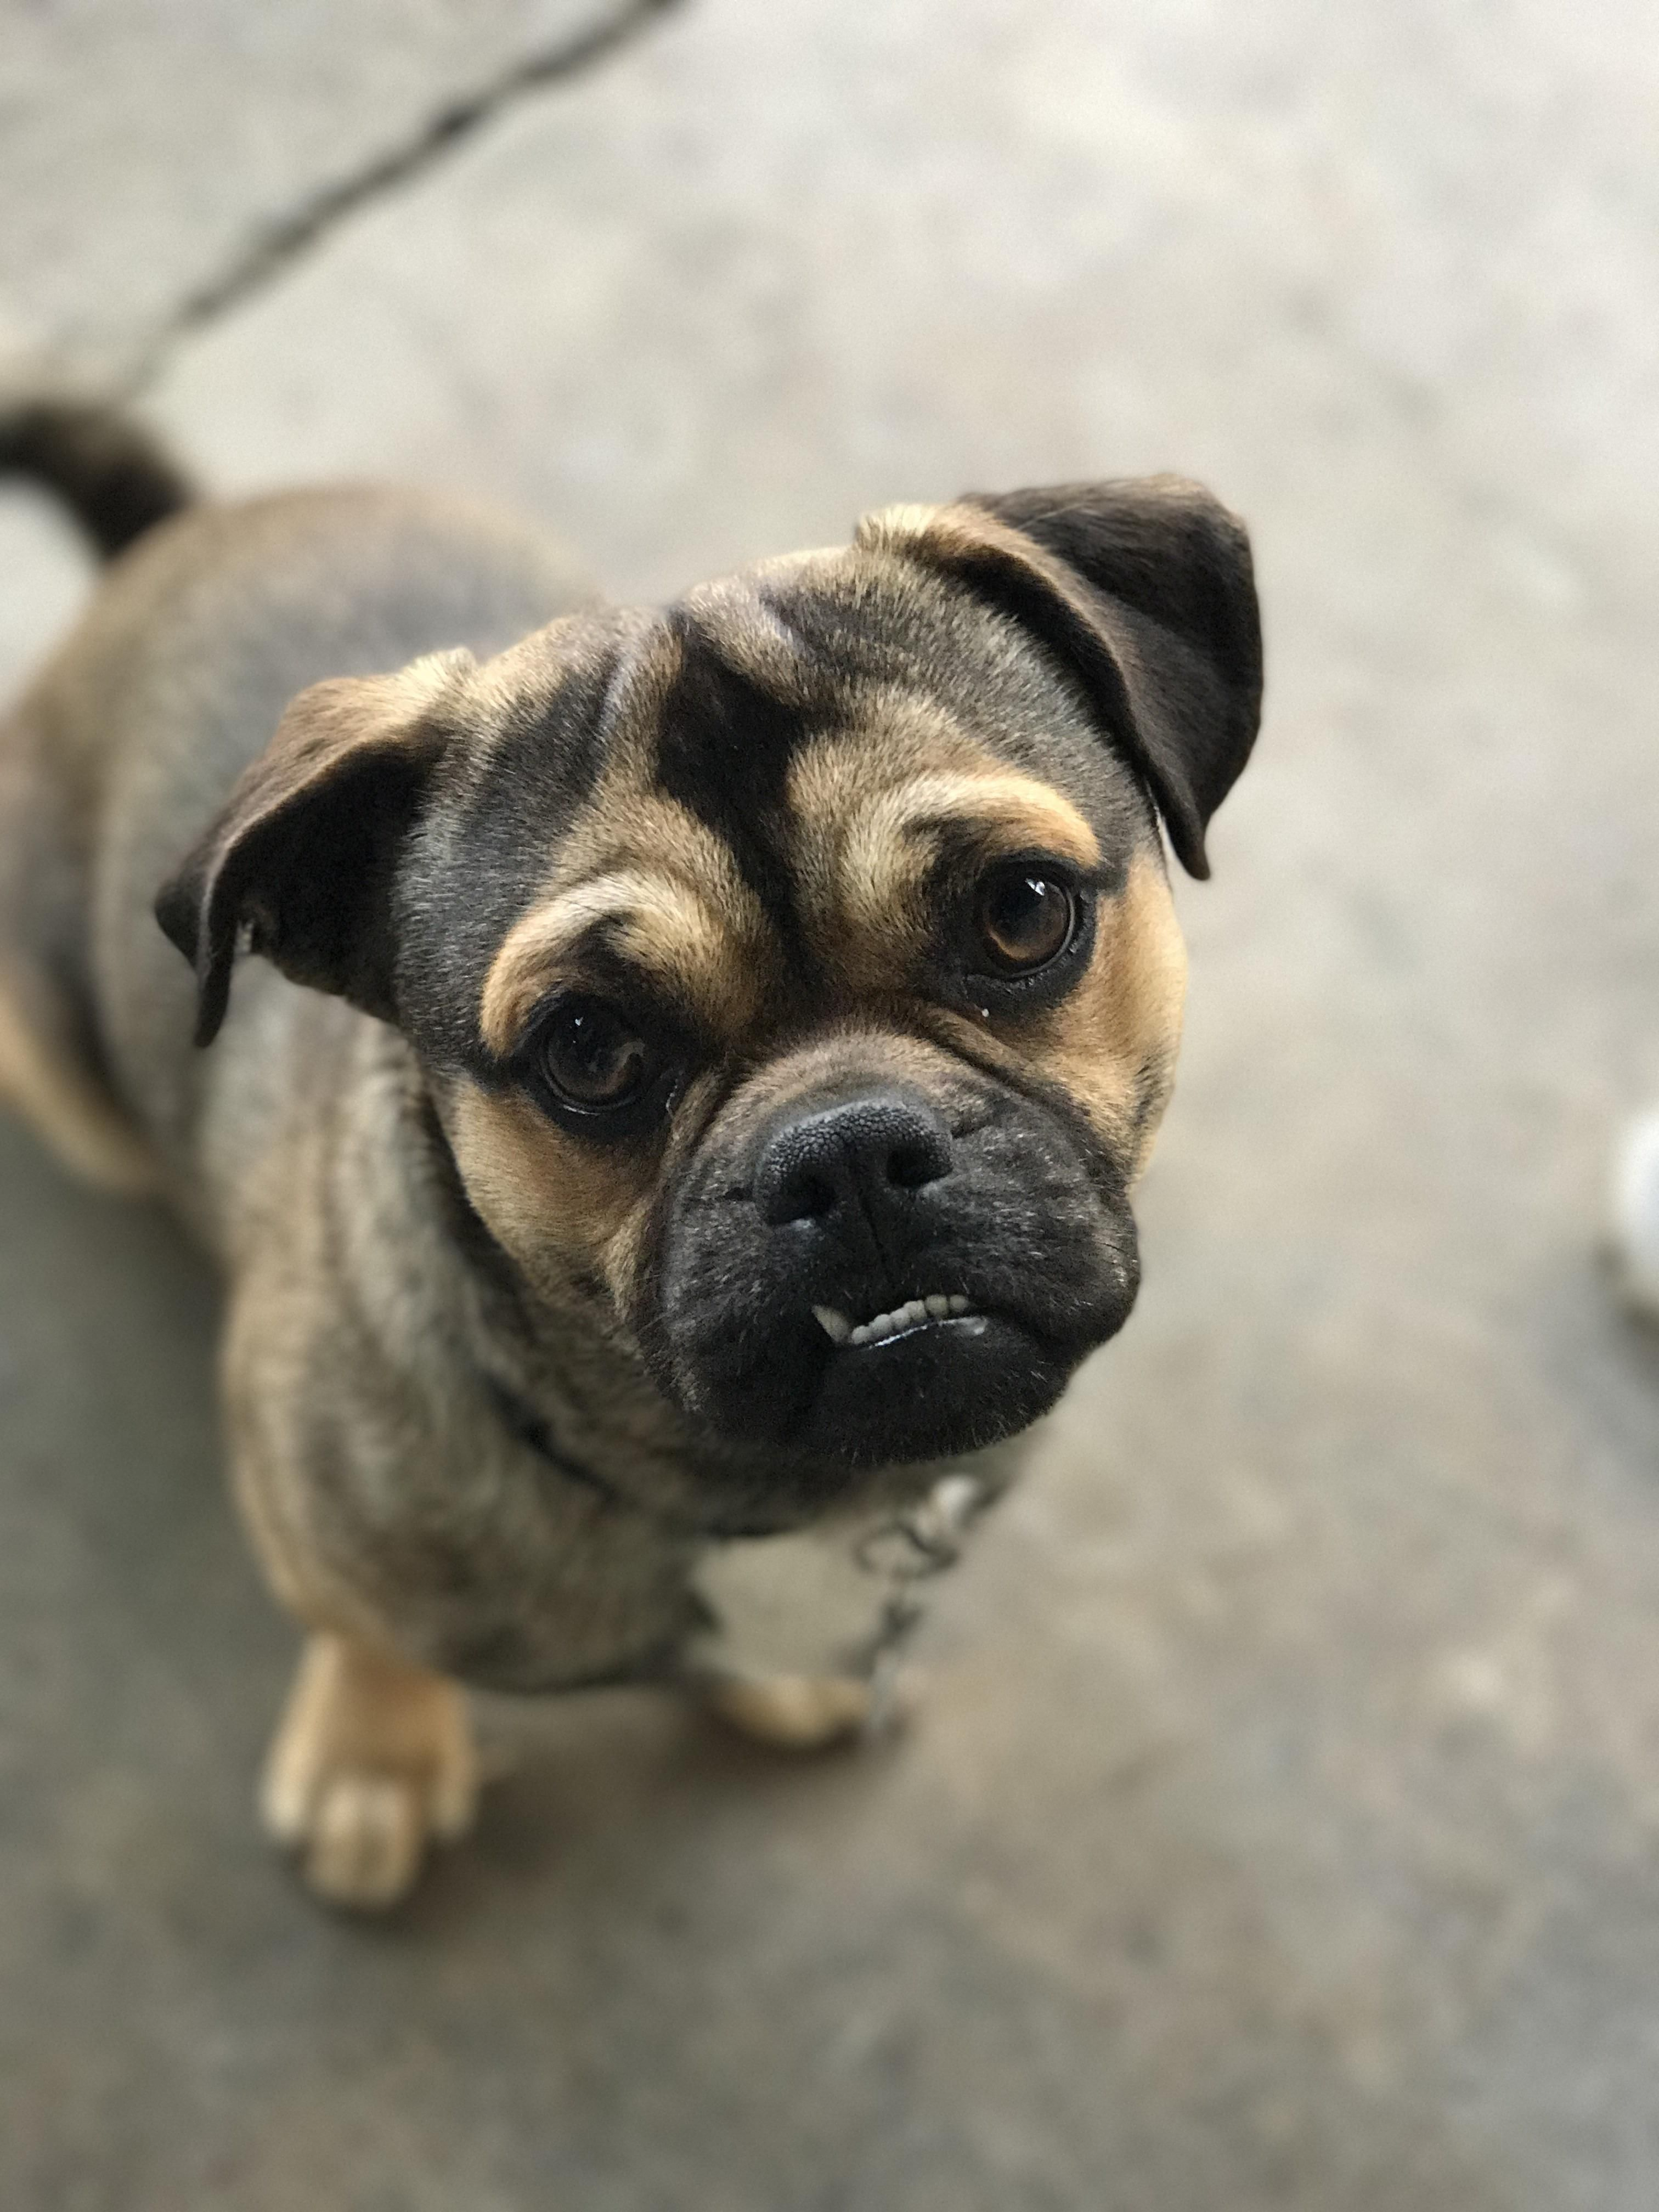 Our puggle Zero cute puppies cats animals